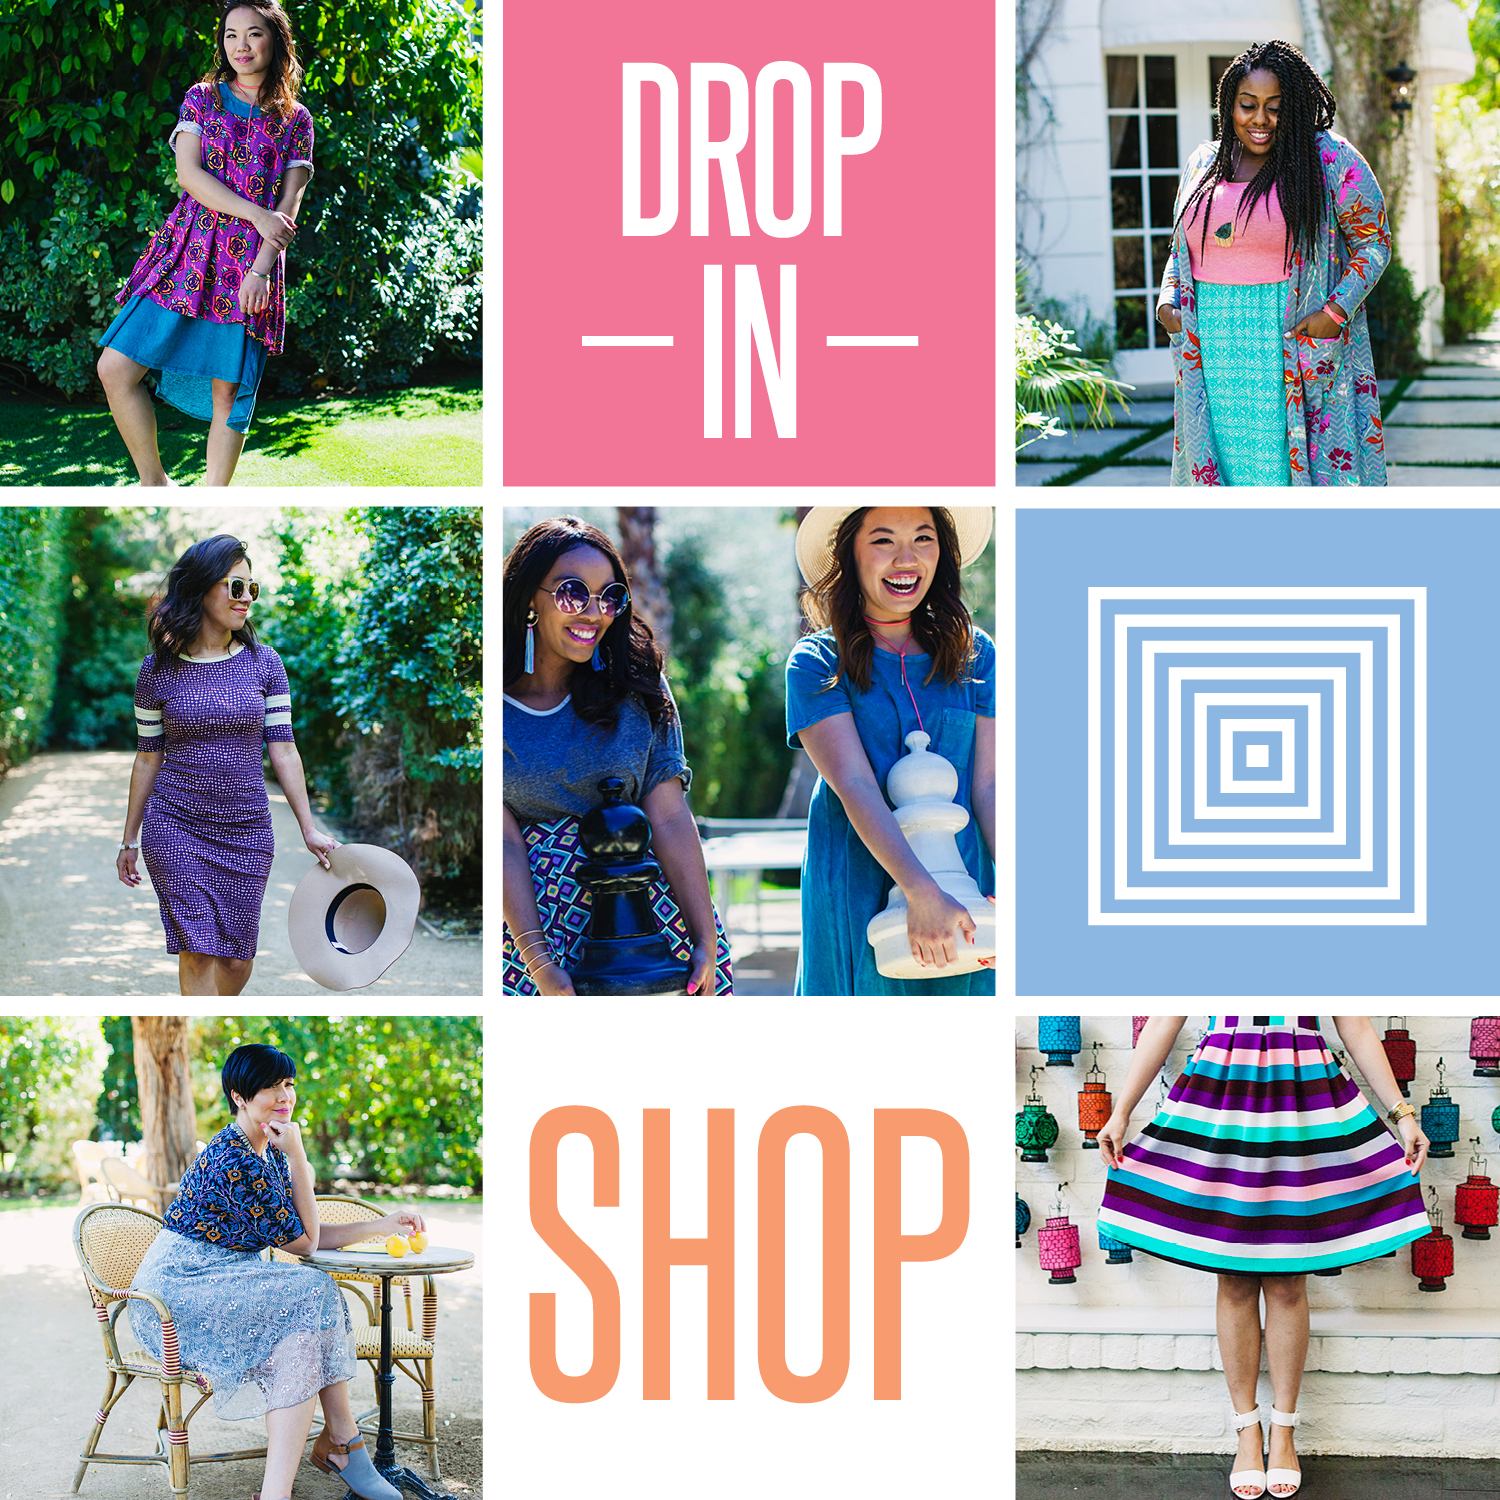 bel air md with Lularoe Pop Shopping Event on The john carroll school together with Los Angeles Voyage To Los Angeles furthermore 7993 Bowie 2404023137 df3a298c47 also Cardsearch likewise 4145346231.